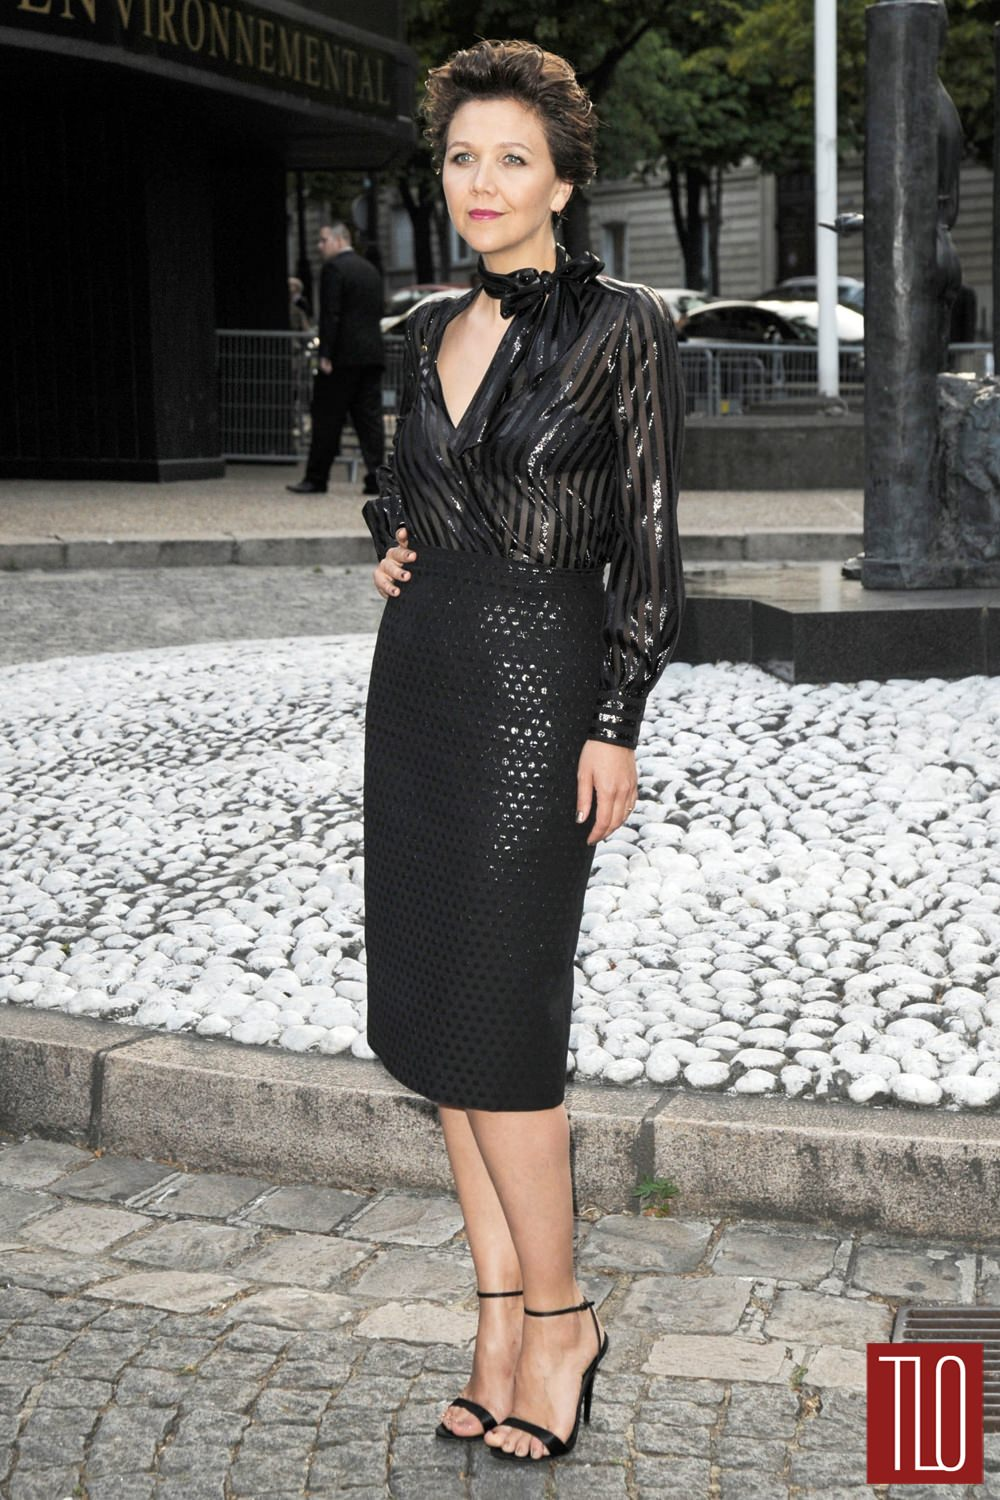 What Race Is Rita Ora >> Maggie Gyllenhaal at Miu Miu Fragrance Launch Event | Tom + Lorenzo